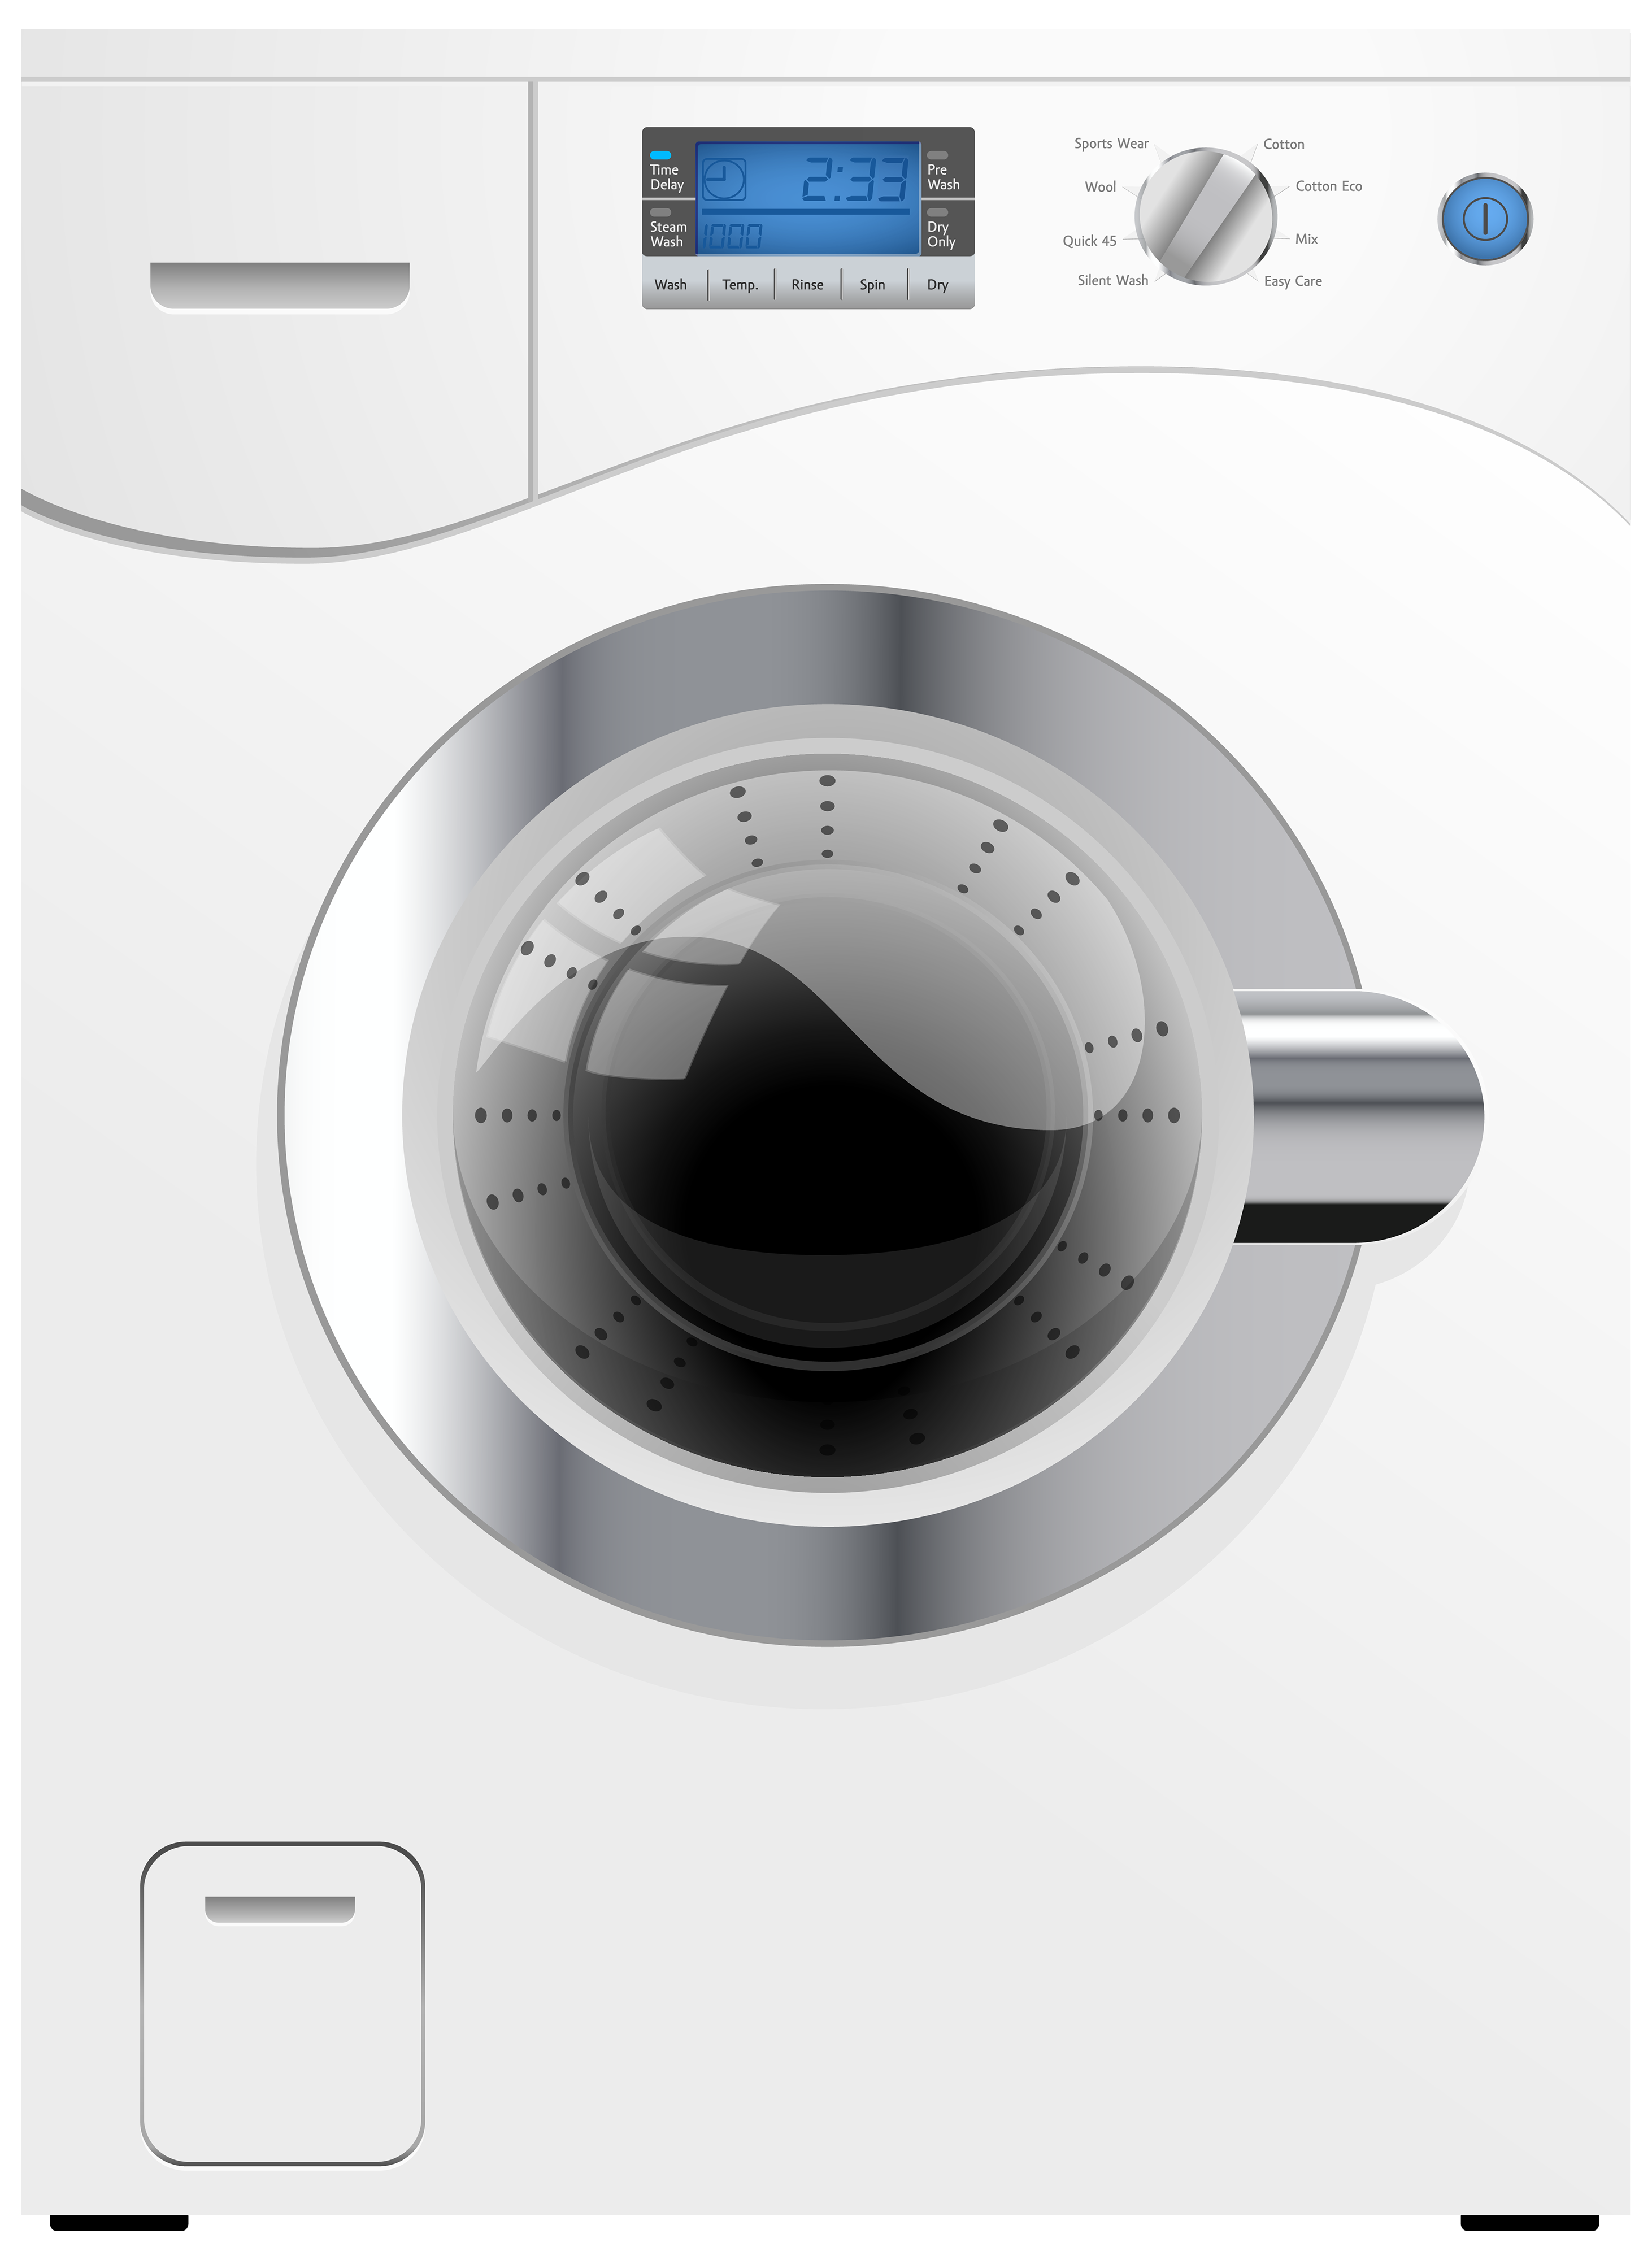 white washing machine png clipart best web clipart #20611